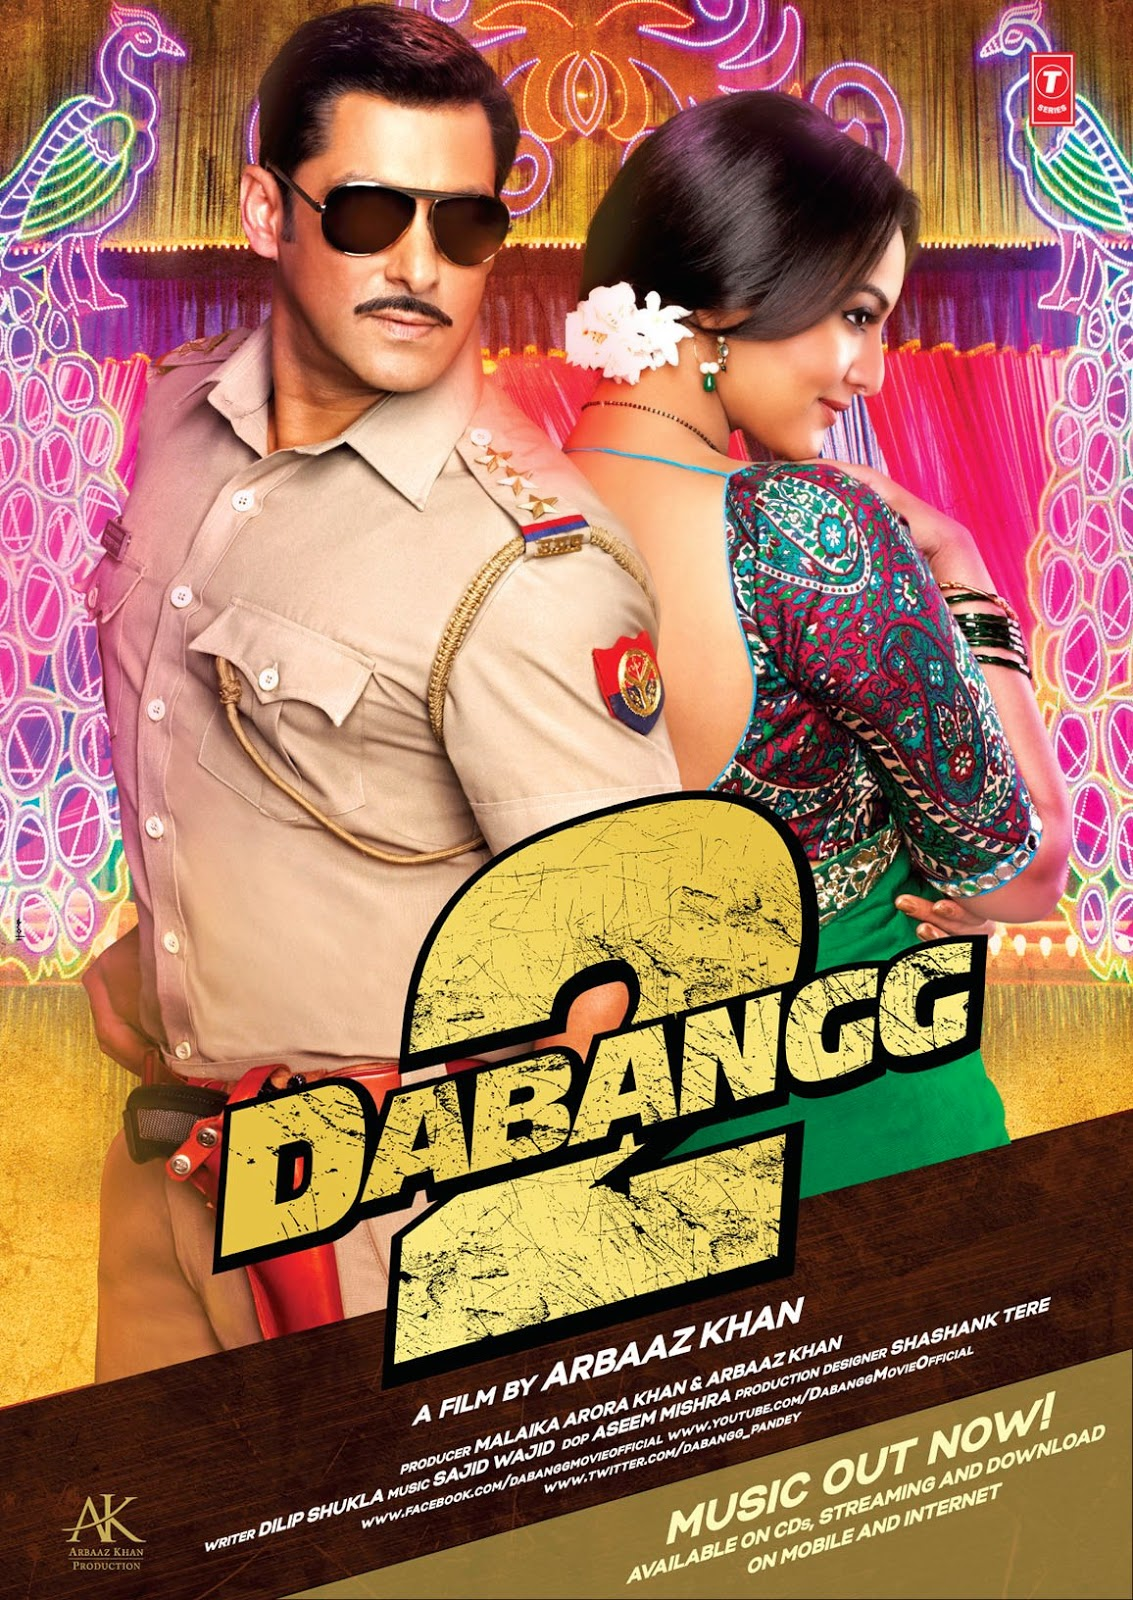 Dabangg 2 (2012) Dvdrip Watch Movie Online With Subtitle Arabic مترجم عربي